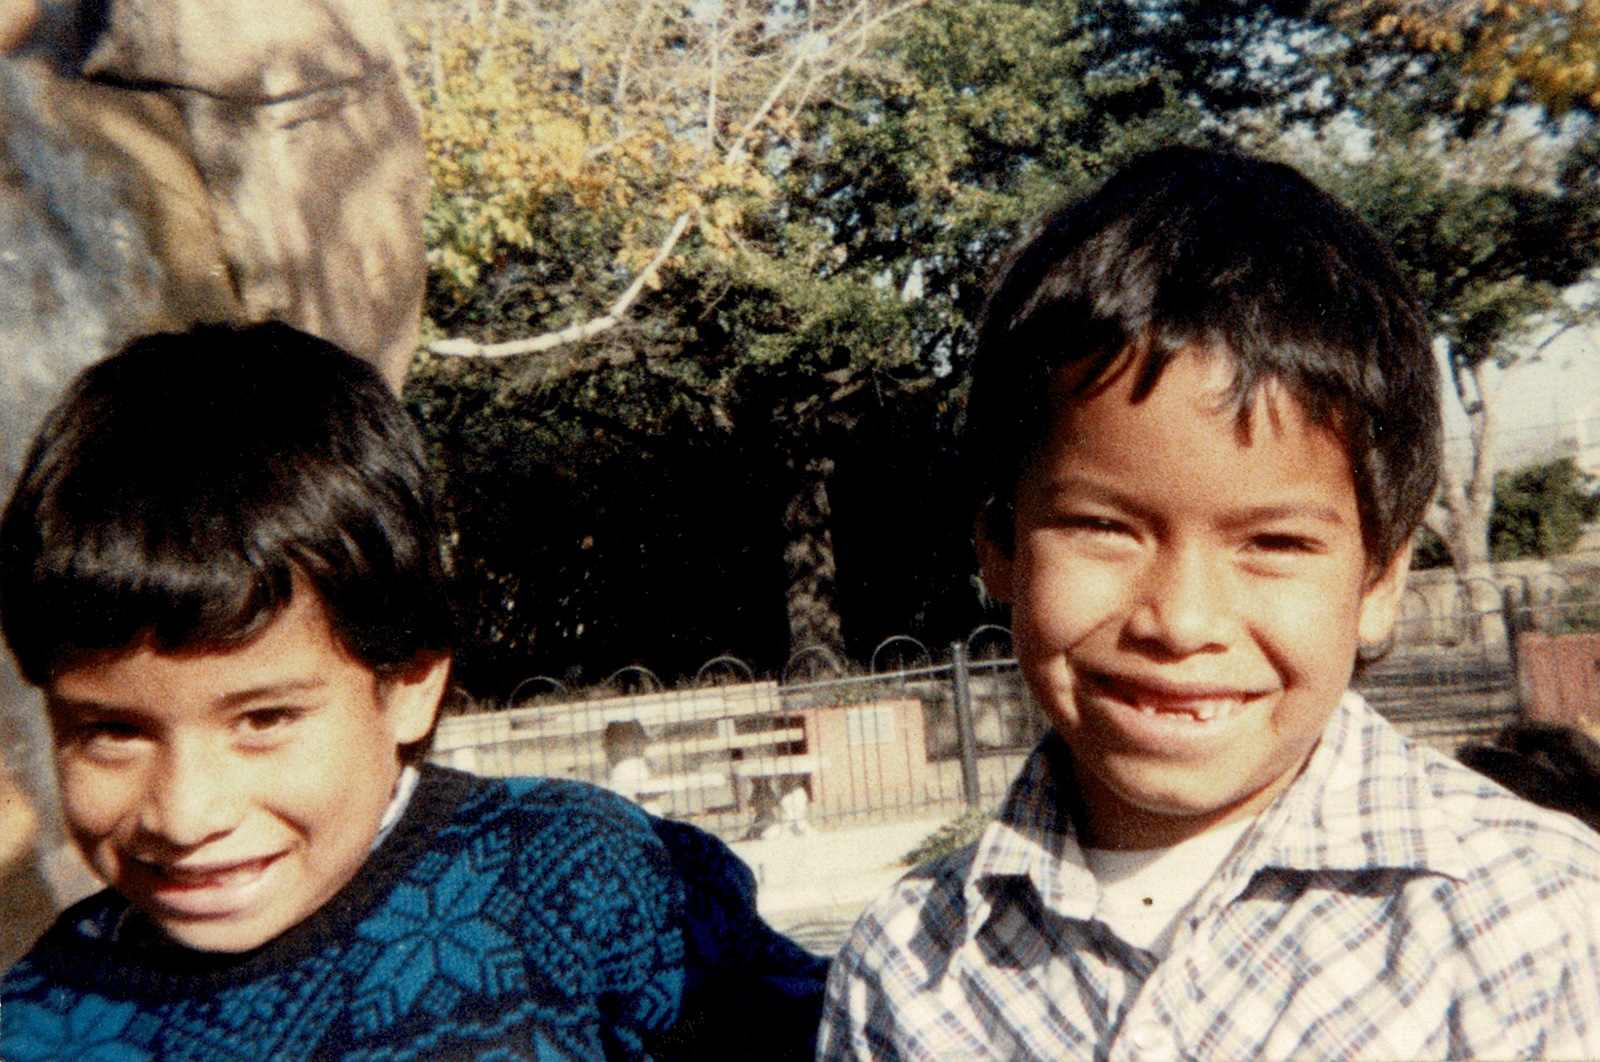 Adrian, left, is shown with his brother Richy in this undated photo from their childhood. Photo courtesy Richy Perez